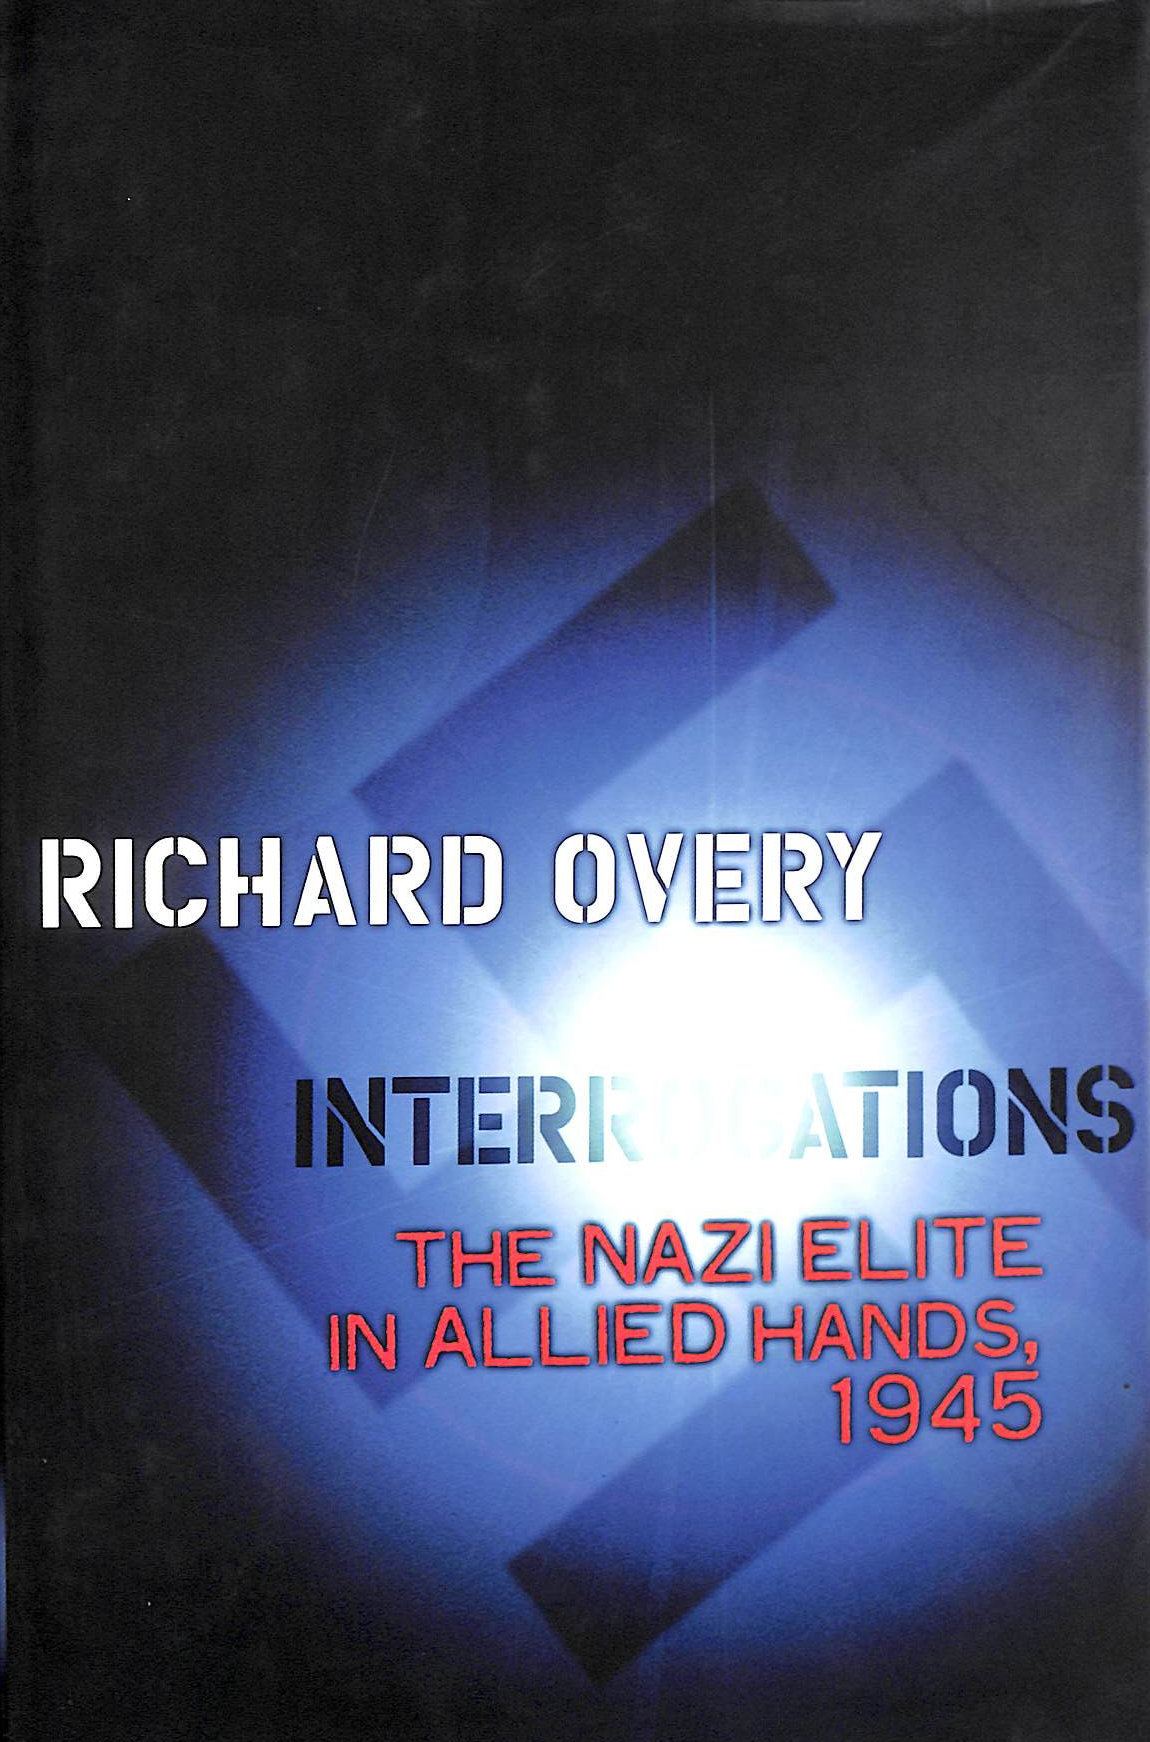 Image for Interrogations: The Nazi Elite in Allied Hands, 1945 (Allen Lane History)